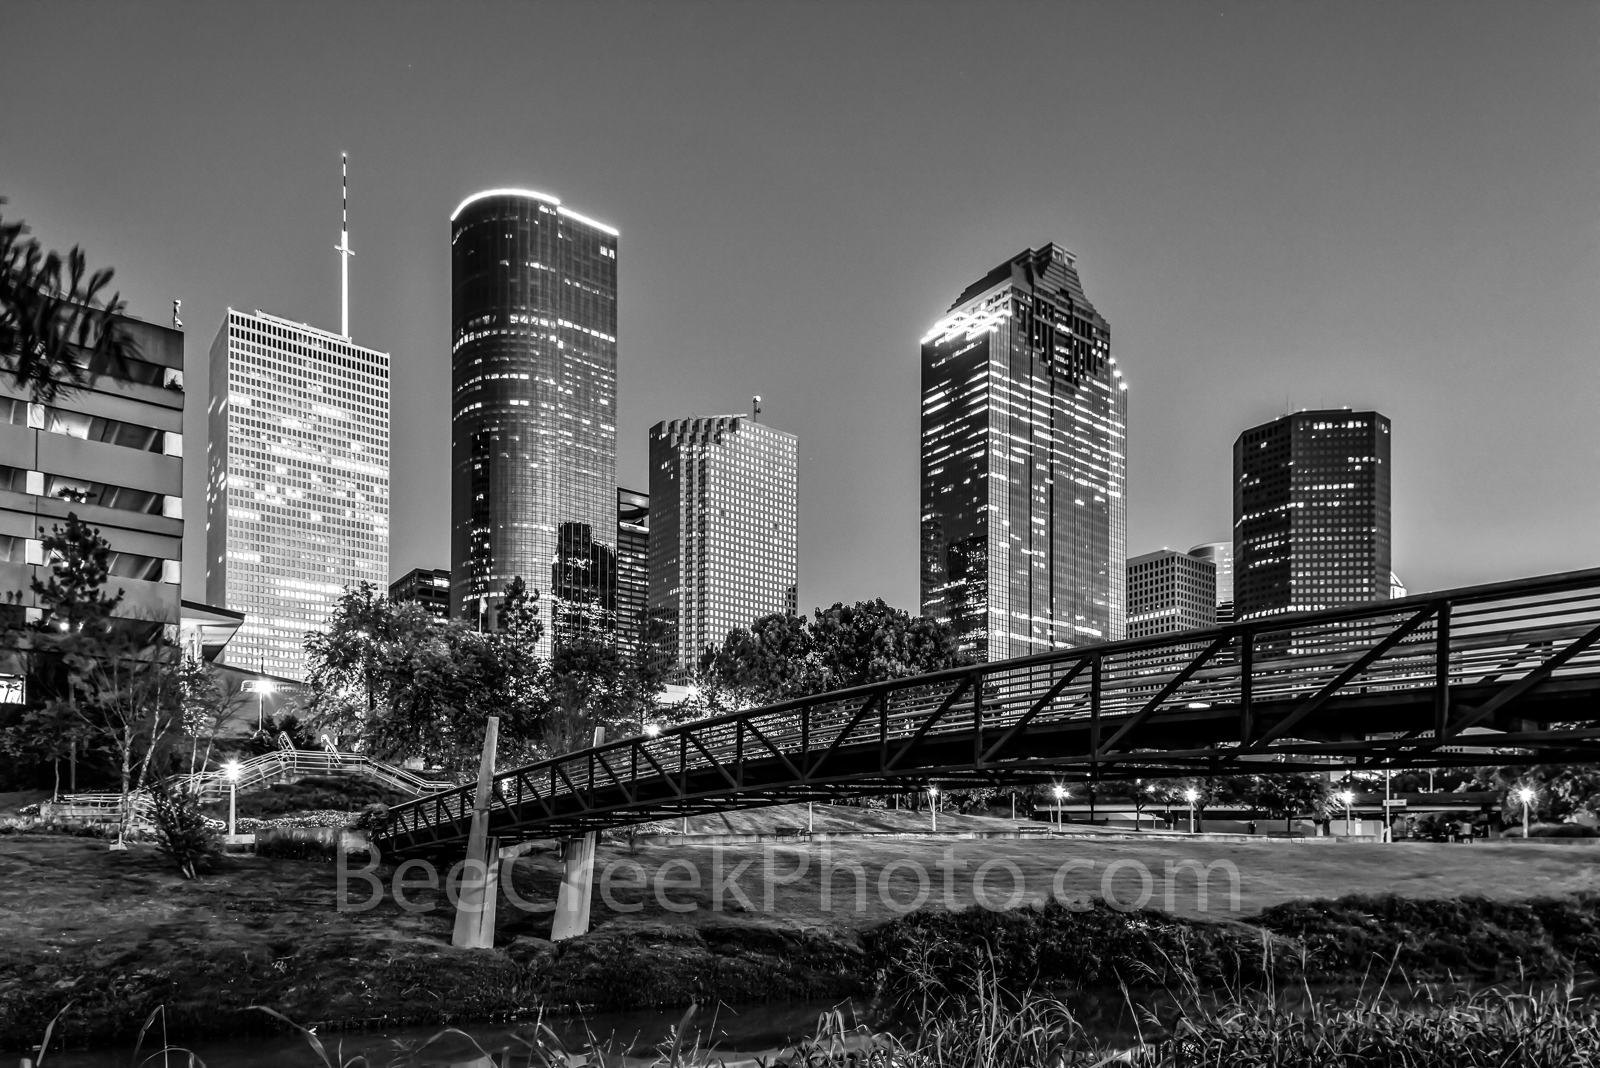 Houston, bagby to sabine, promenade, bridge, downtown, skyline, black and white, BW, pedestrian bridges, america, cityscapes, Wells Fargo, Heritage Plaza, stock bridge photos, stock bridge pictures, i, photo